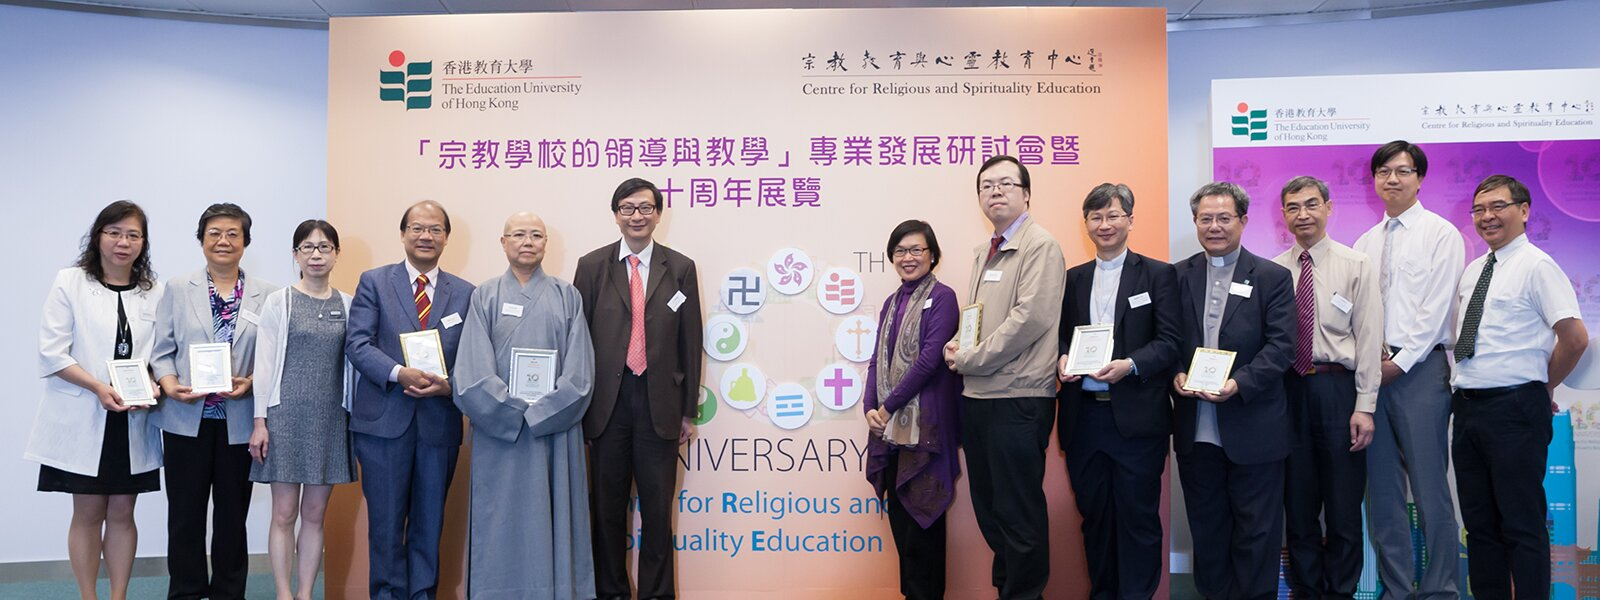 EdUHK Celebrates a Decade of Promoting Religious Education with Seminar on Leadership and Teaching in Religious Schools